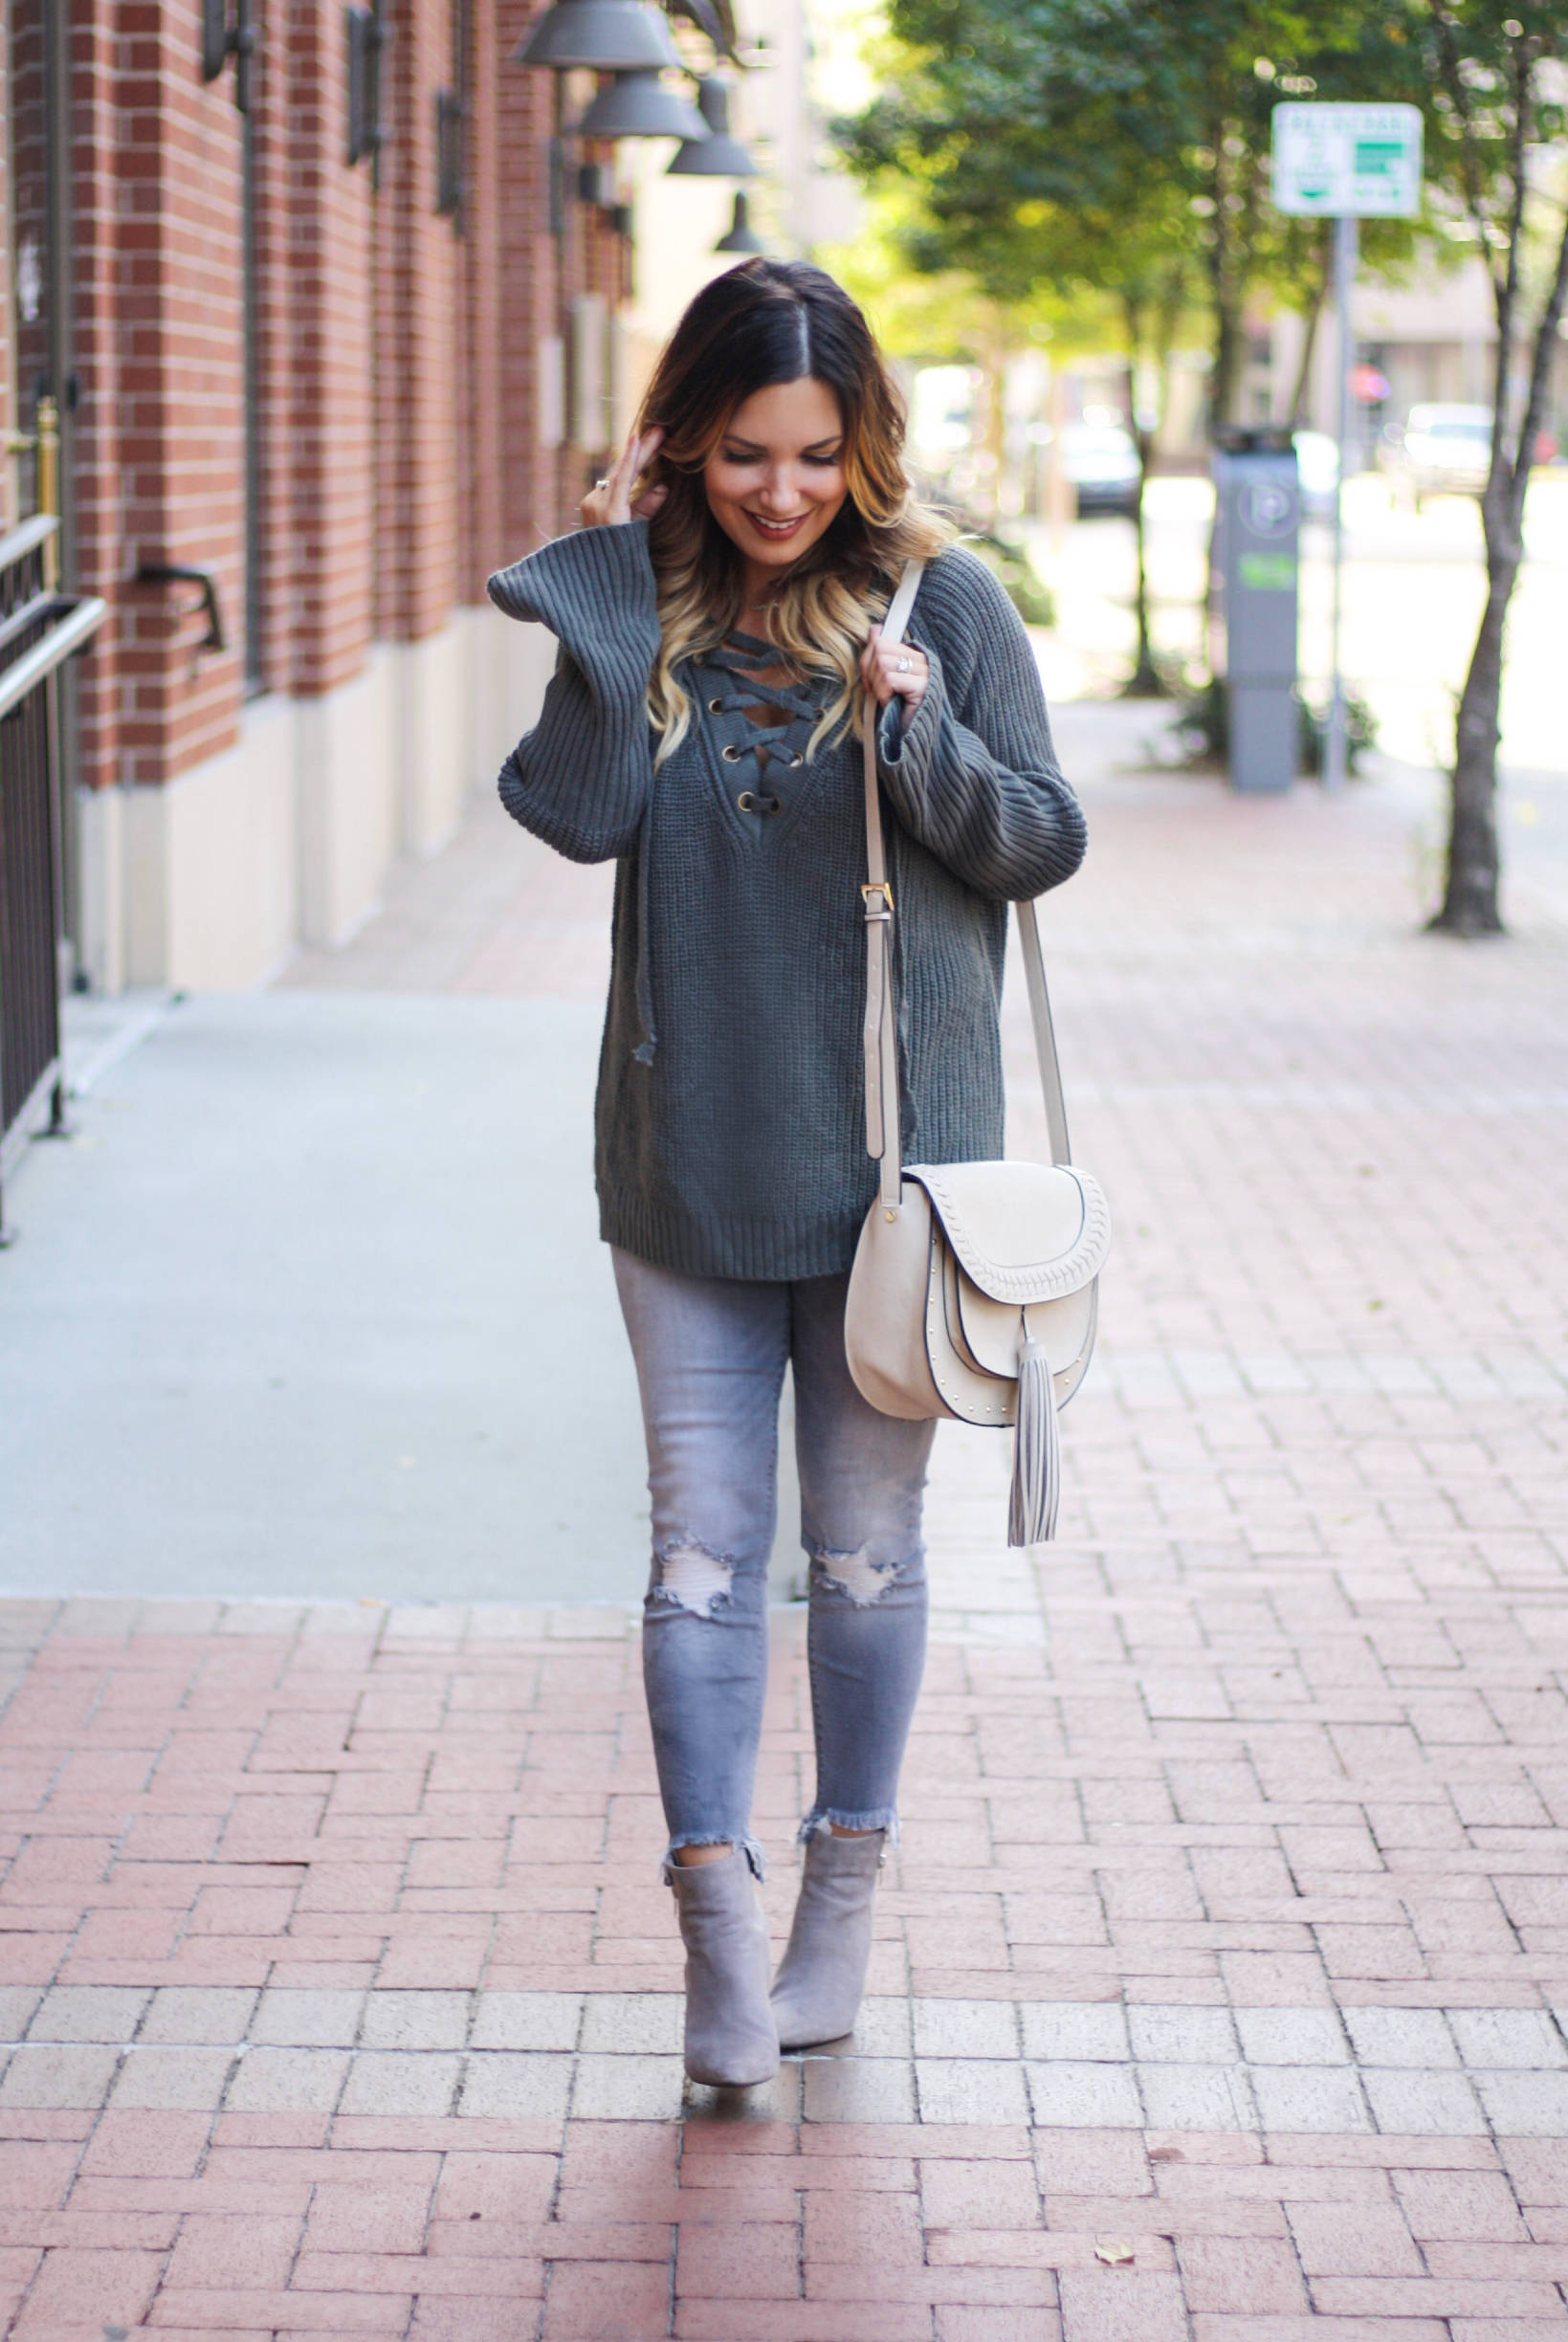 Oversized sweater and denim